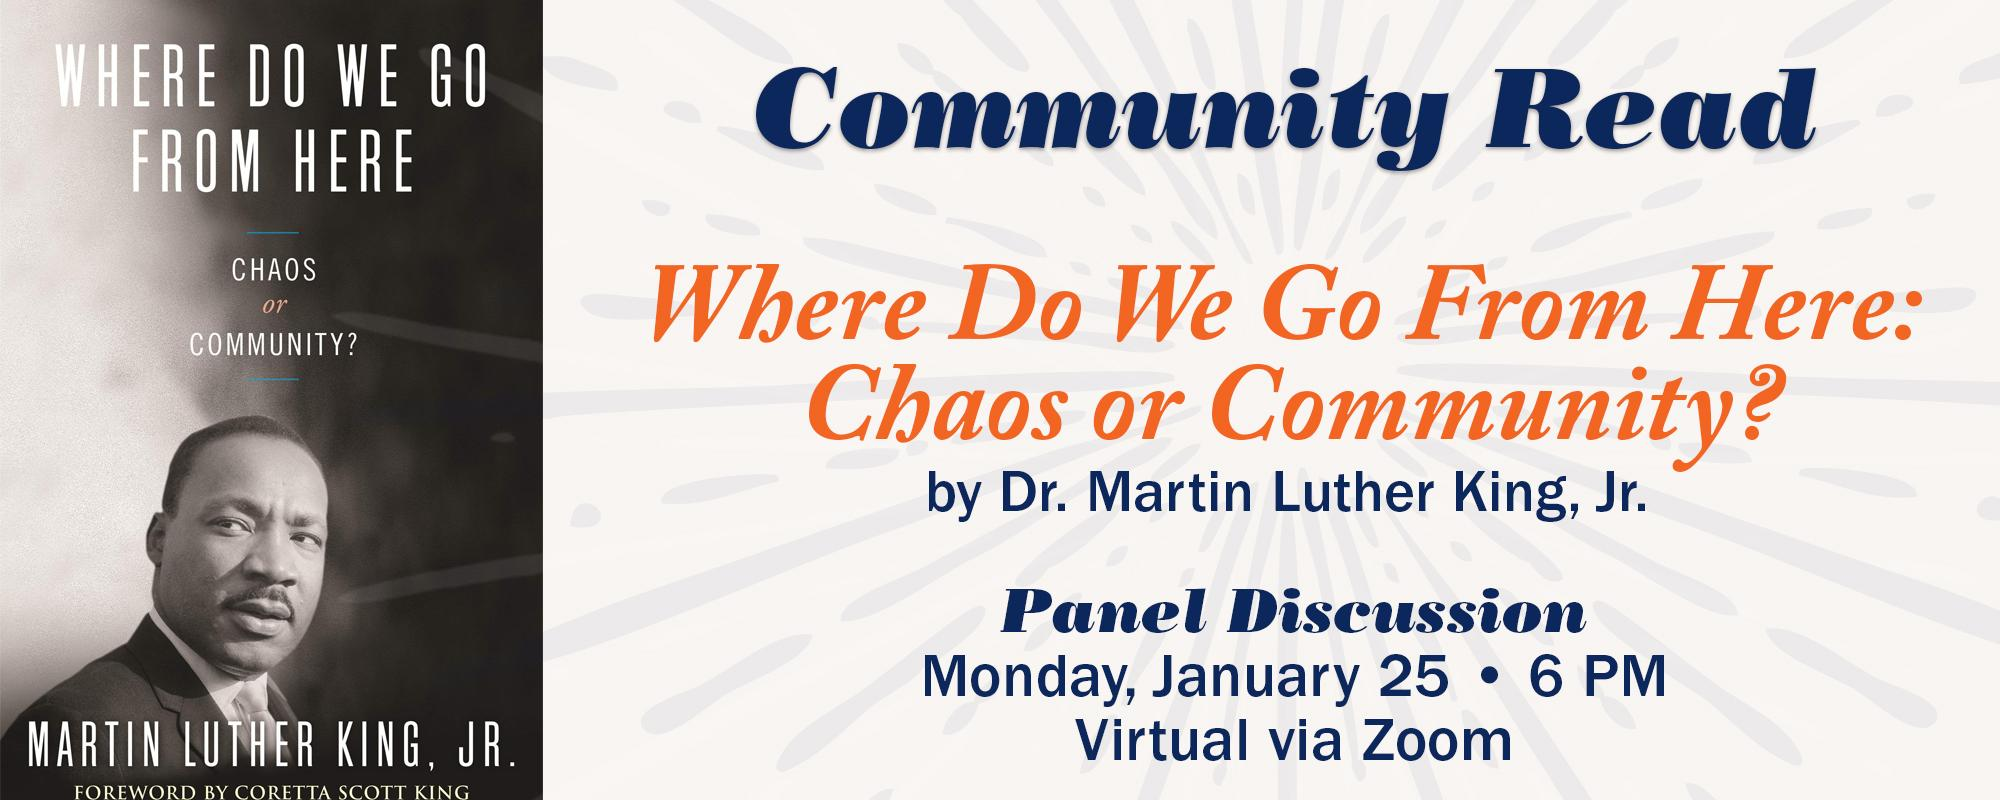 community read. where do we go from here: chaos or community? by Dr. Martin Luther King, Jr.